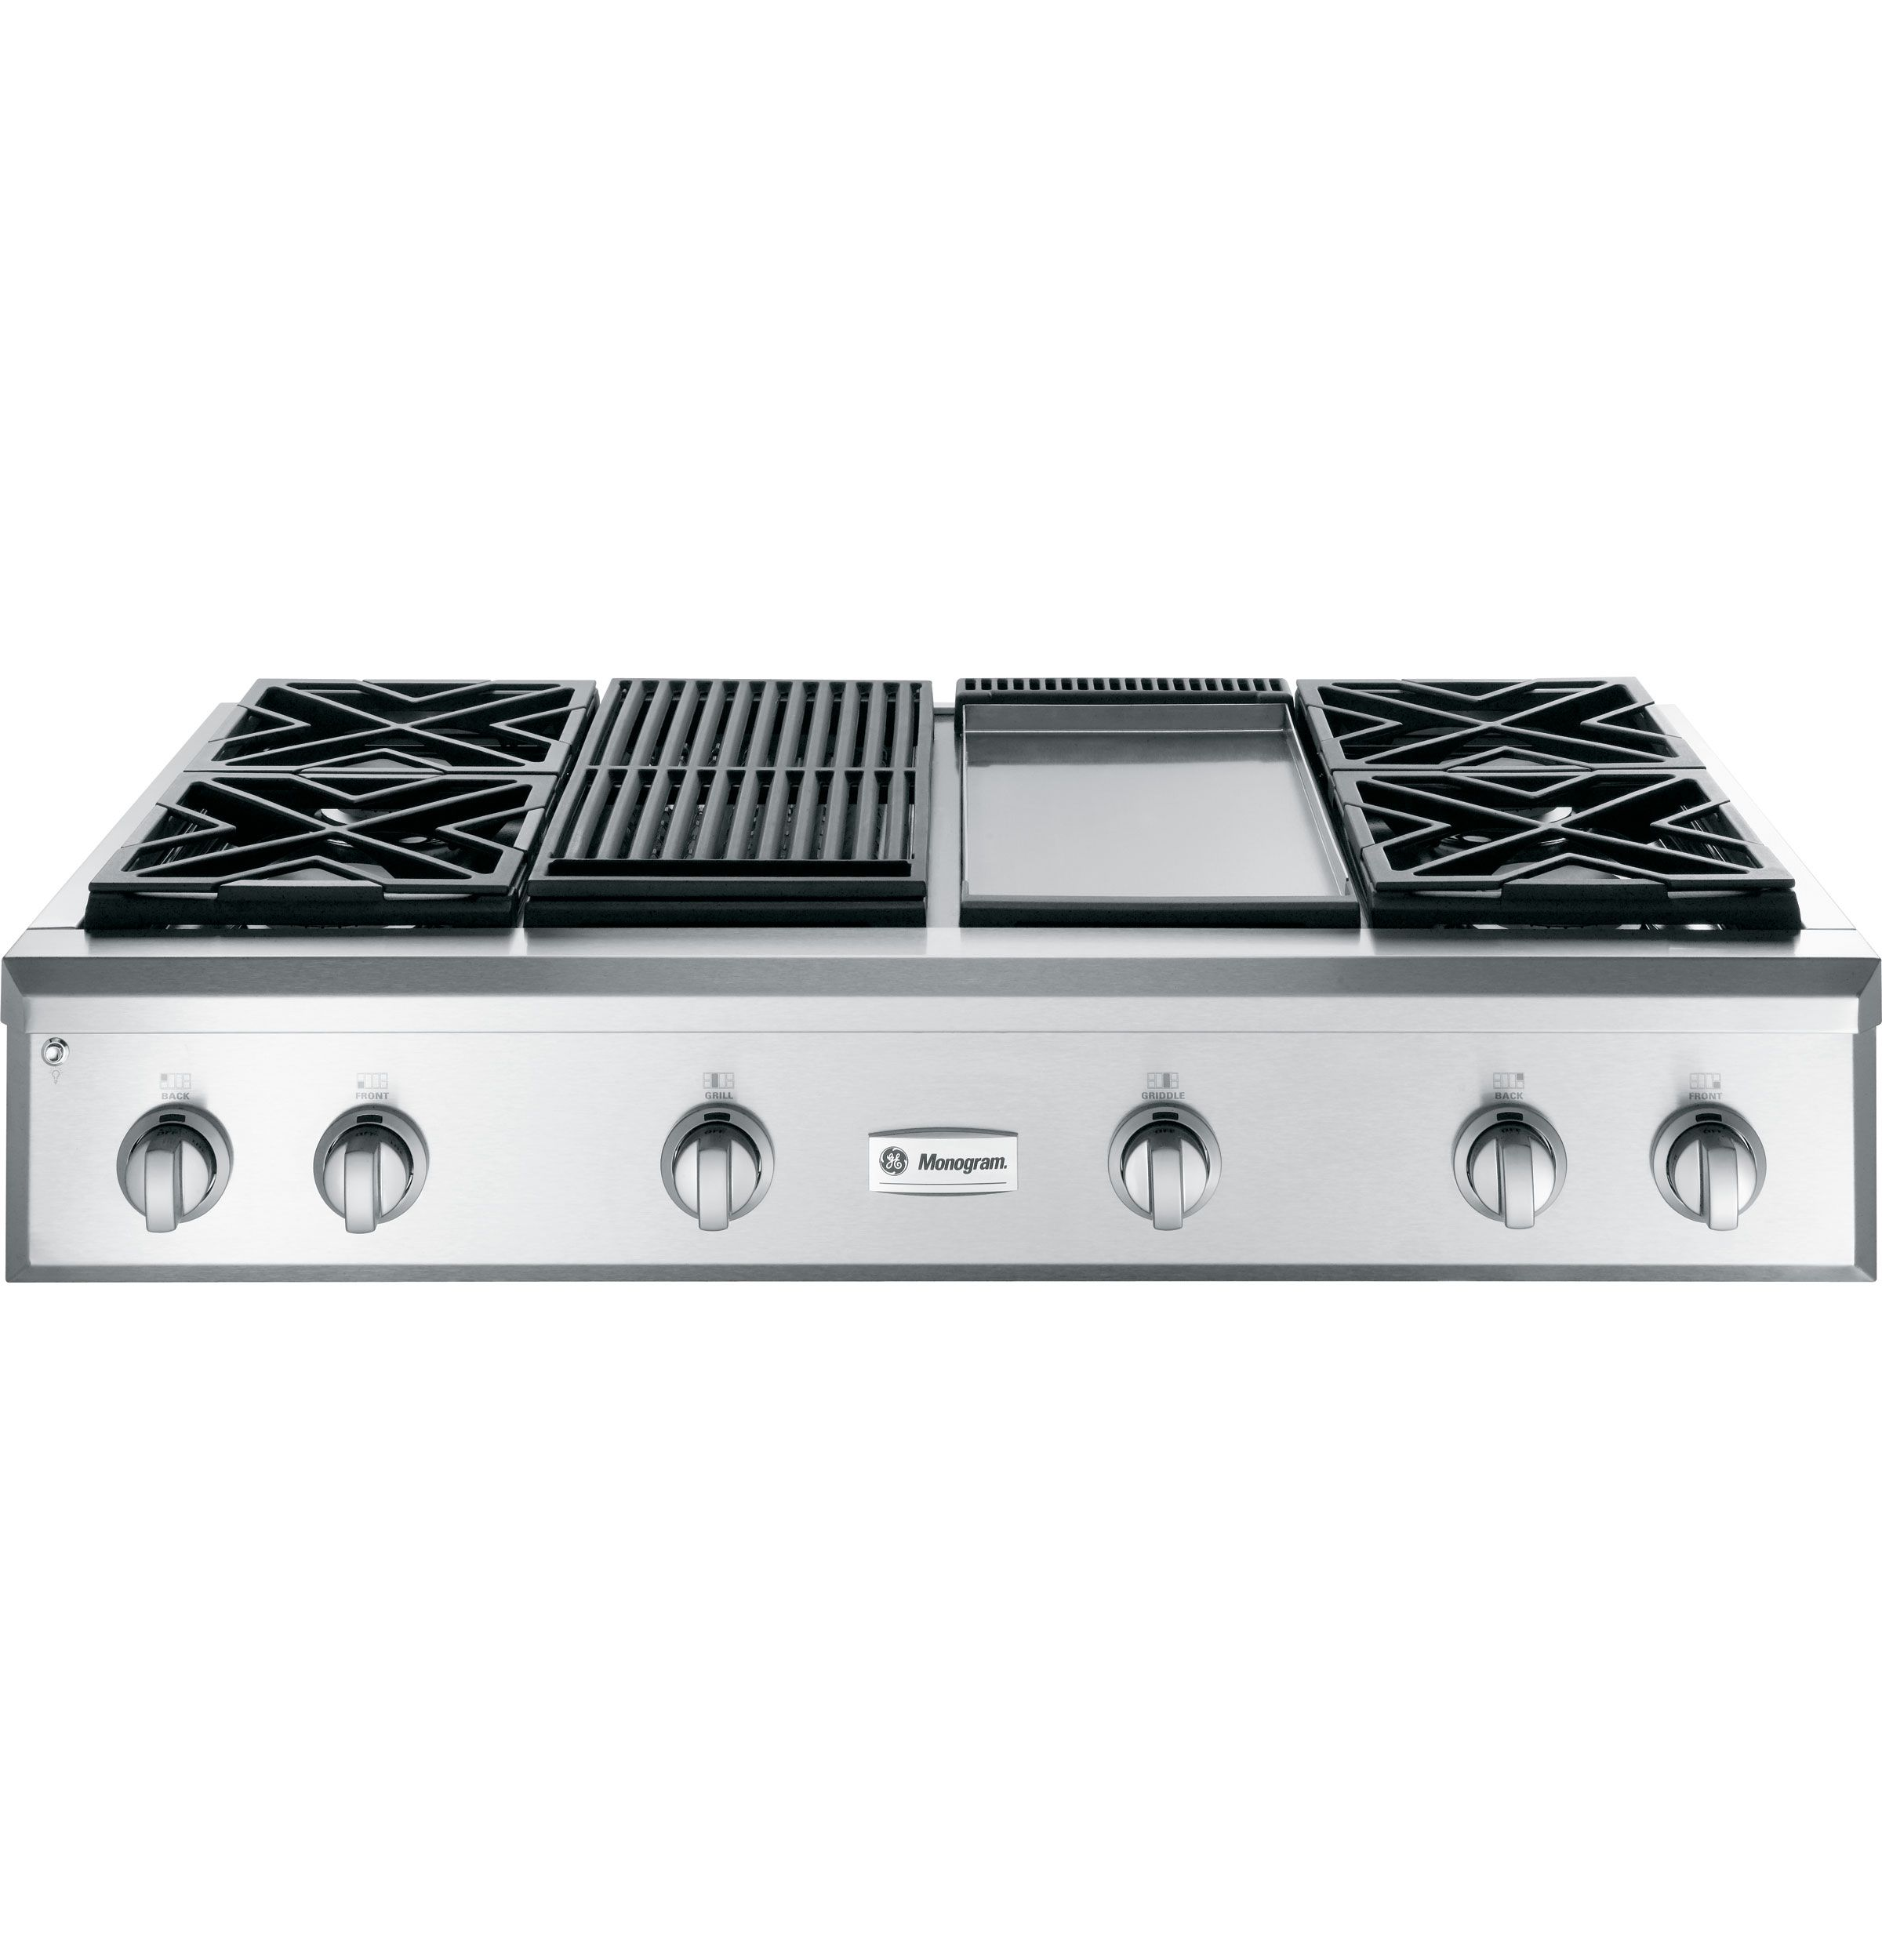 I Like The Grates Better On This One Images Of Ge Monogram Zgu484ngpss 48 Professional Gas Cooktop With 4 Burners Gas Cooktop Monogram Appliances Cooktop